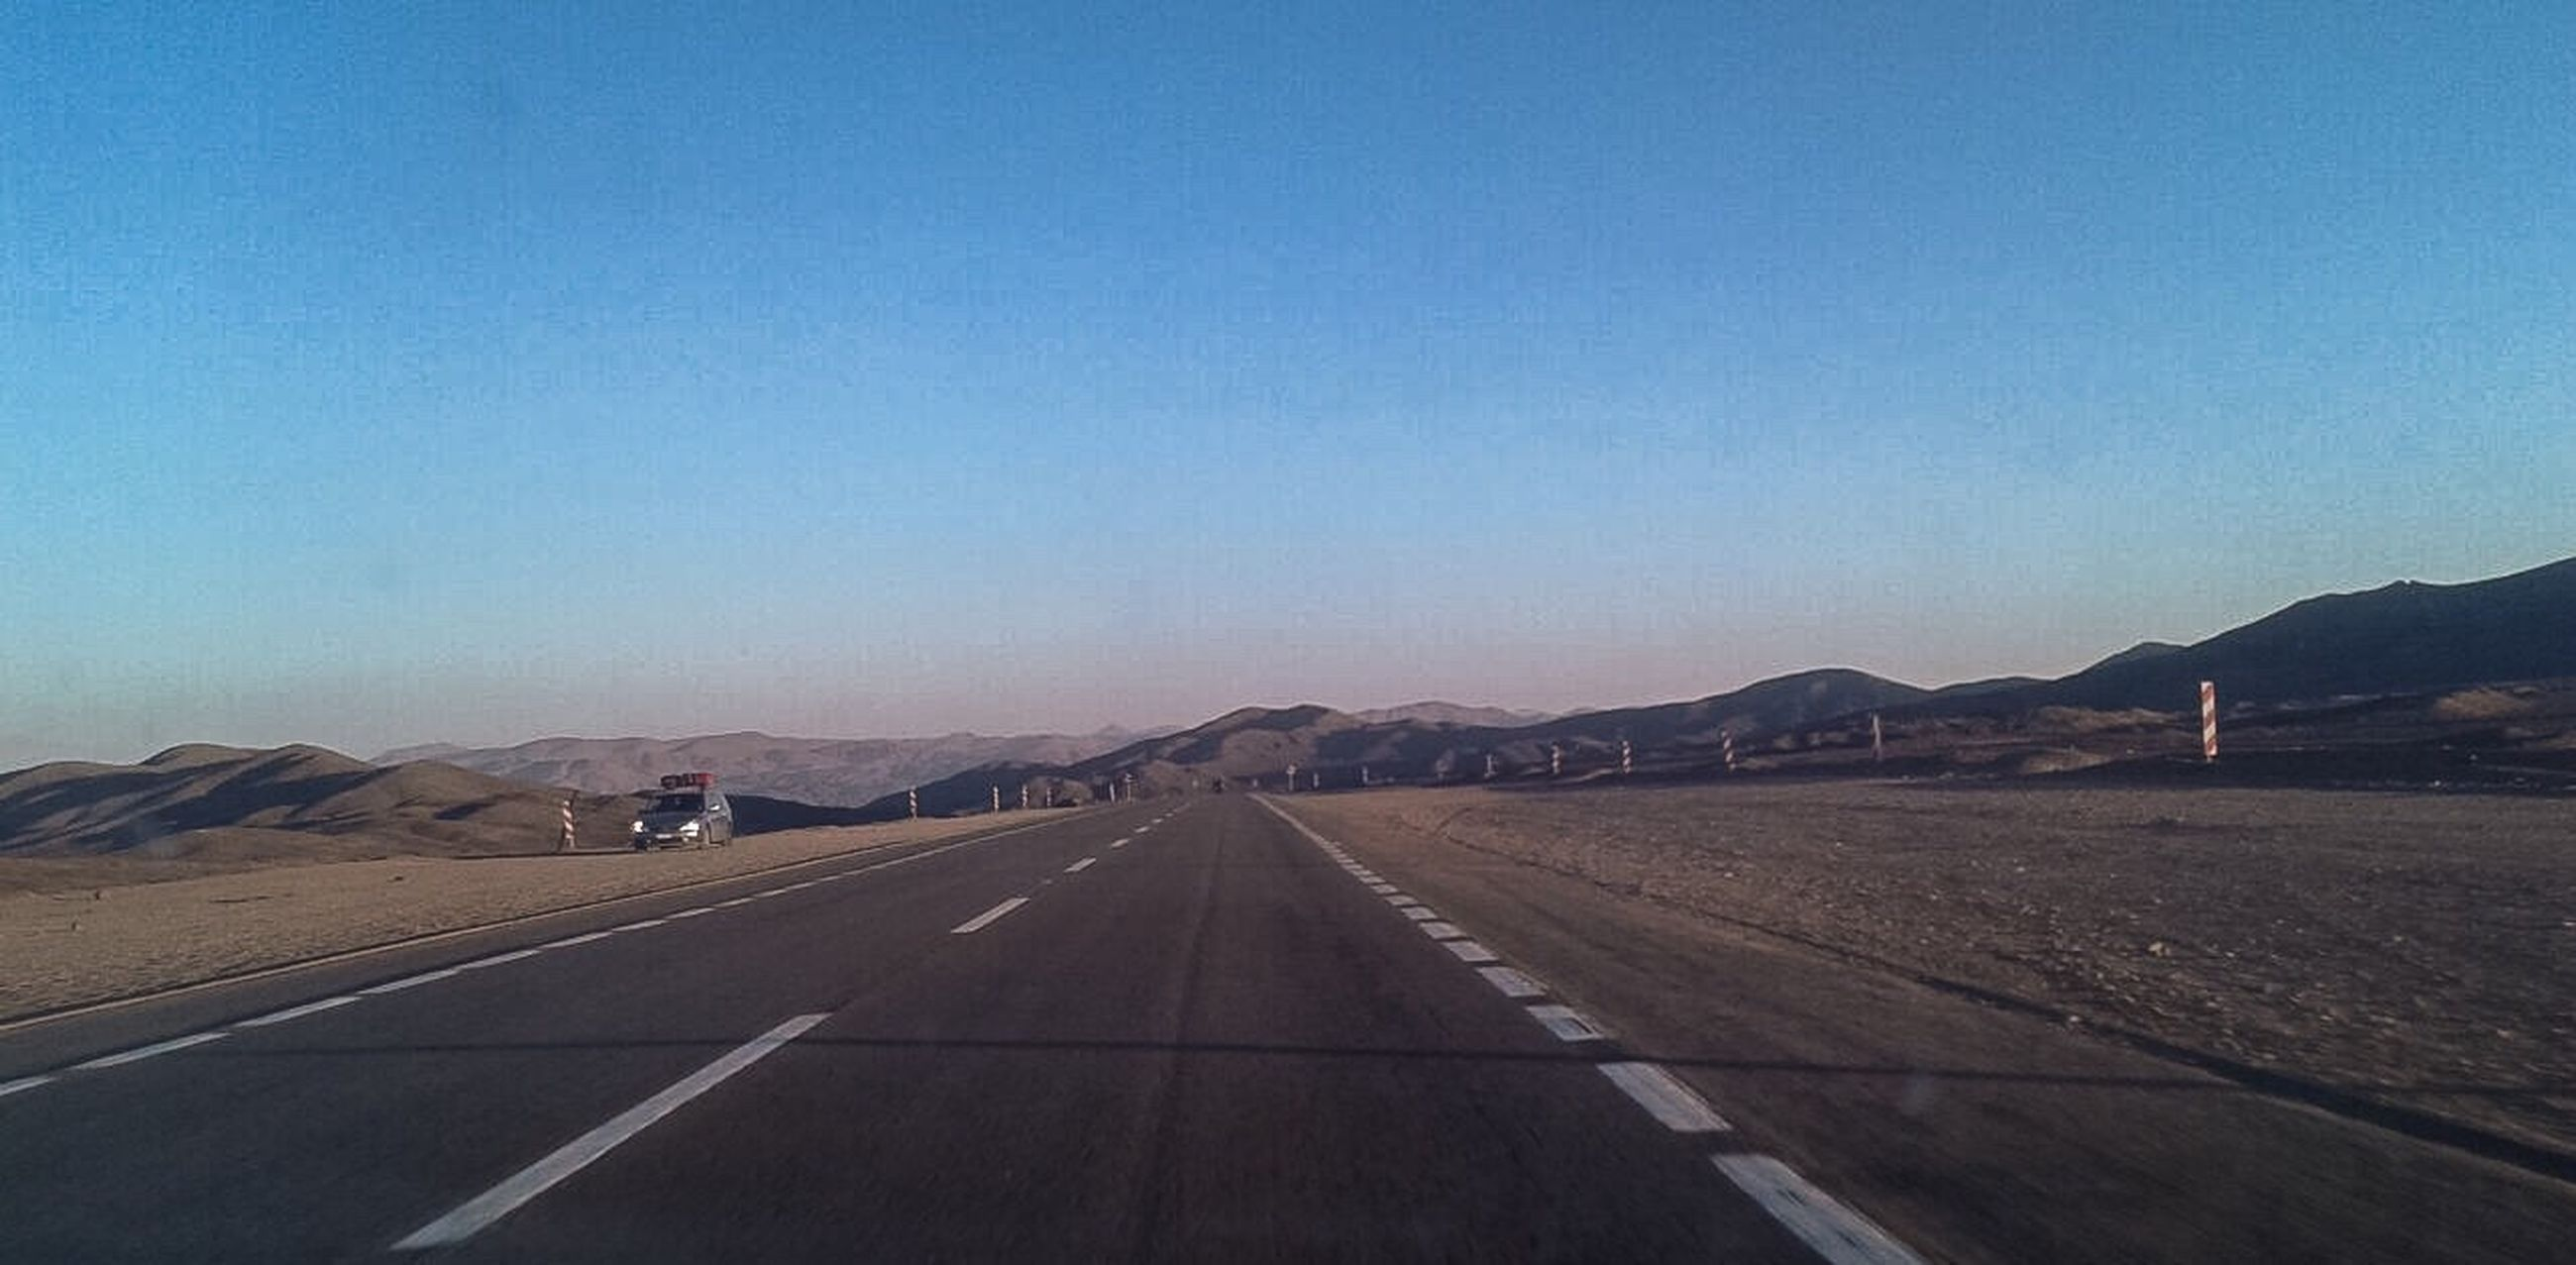 transportation, road, clear sky, road marking, mountain, empty, blue, copy space, the way forward, long, mountain range, country road, landscape, street, diminishing perspective, white line, vanishing point, tranquil scene, dividing line, day, surface level, tranquility, outdoors, solitude, scenics, nature, countryside